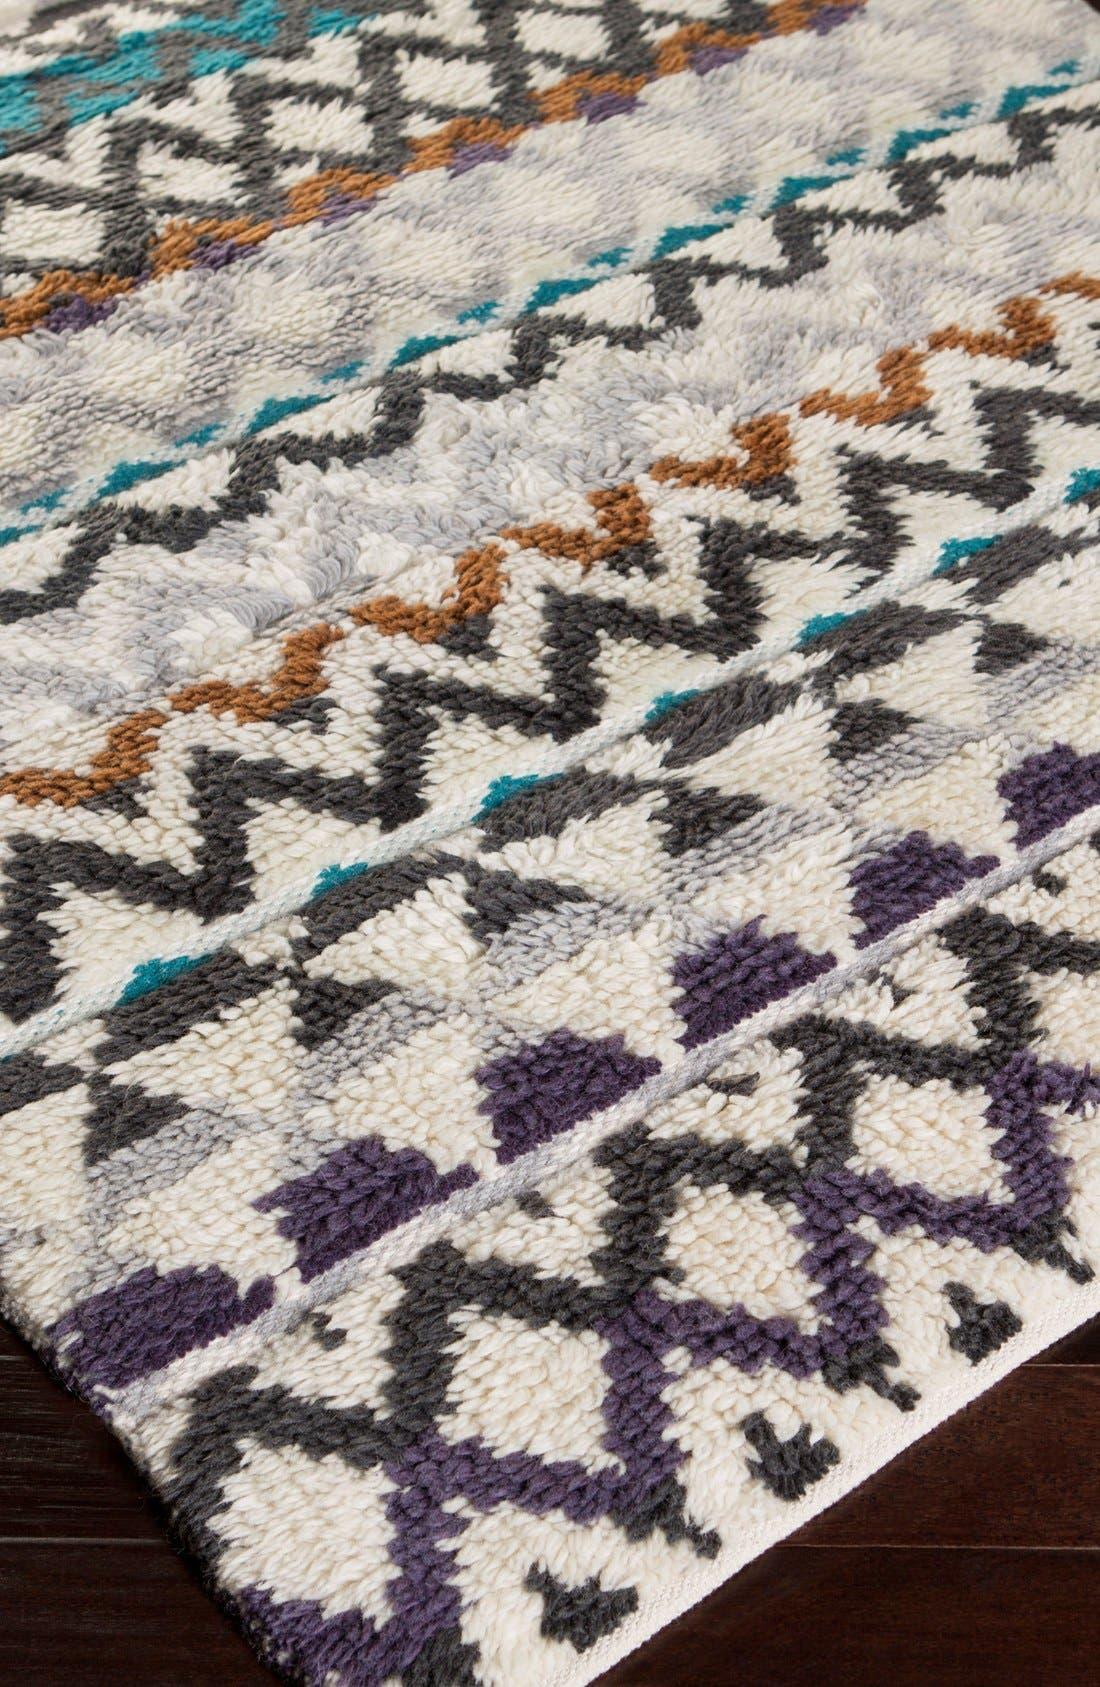 'Atticus' Hand Woven Wool Rug,                             Alternate thumbnail 2, color,                             Violet/ Charcoal Multi